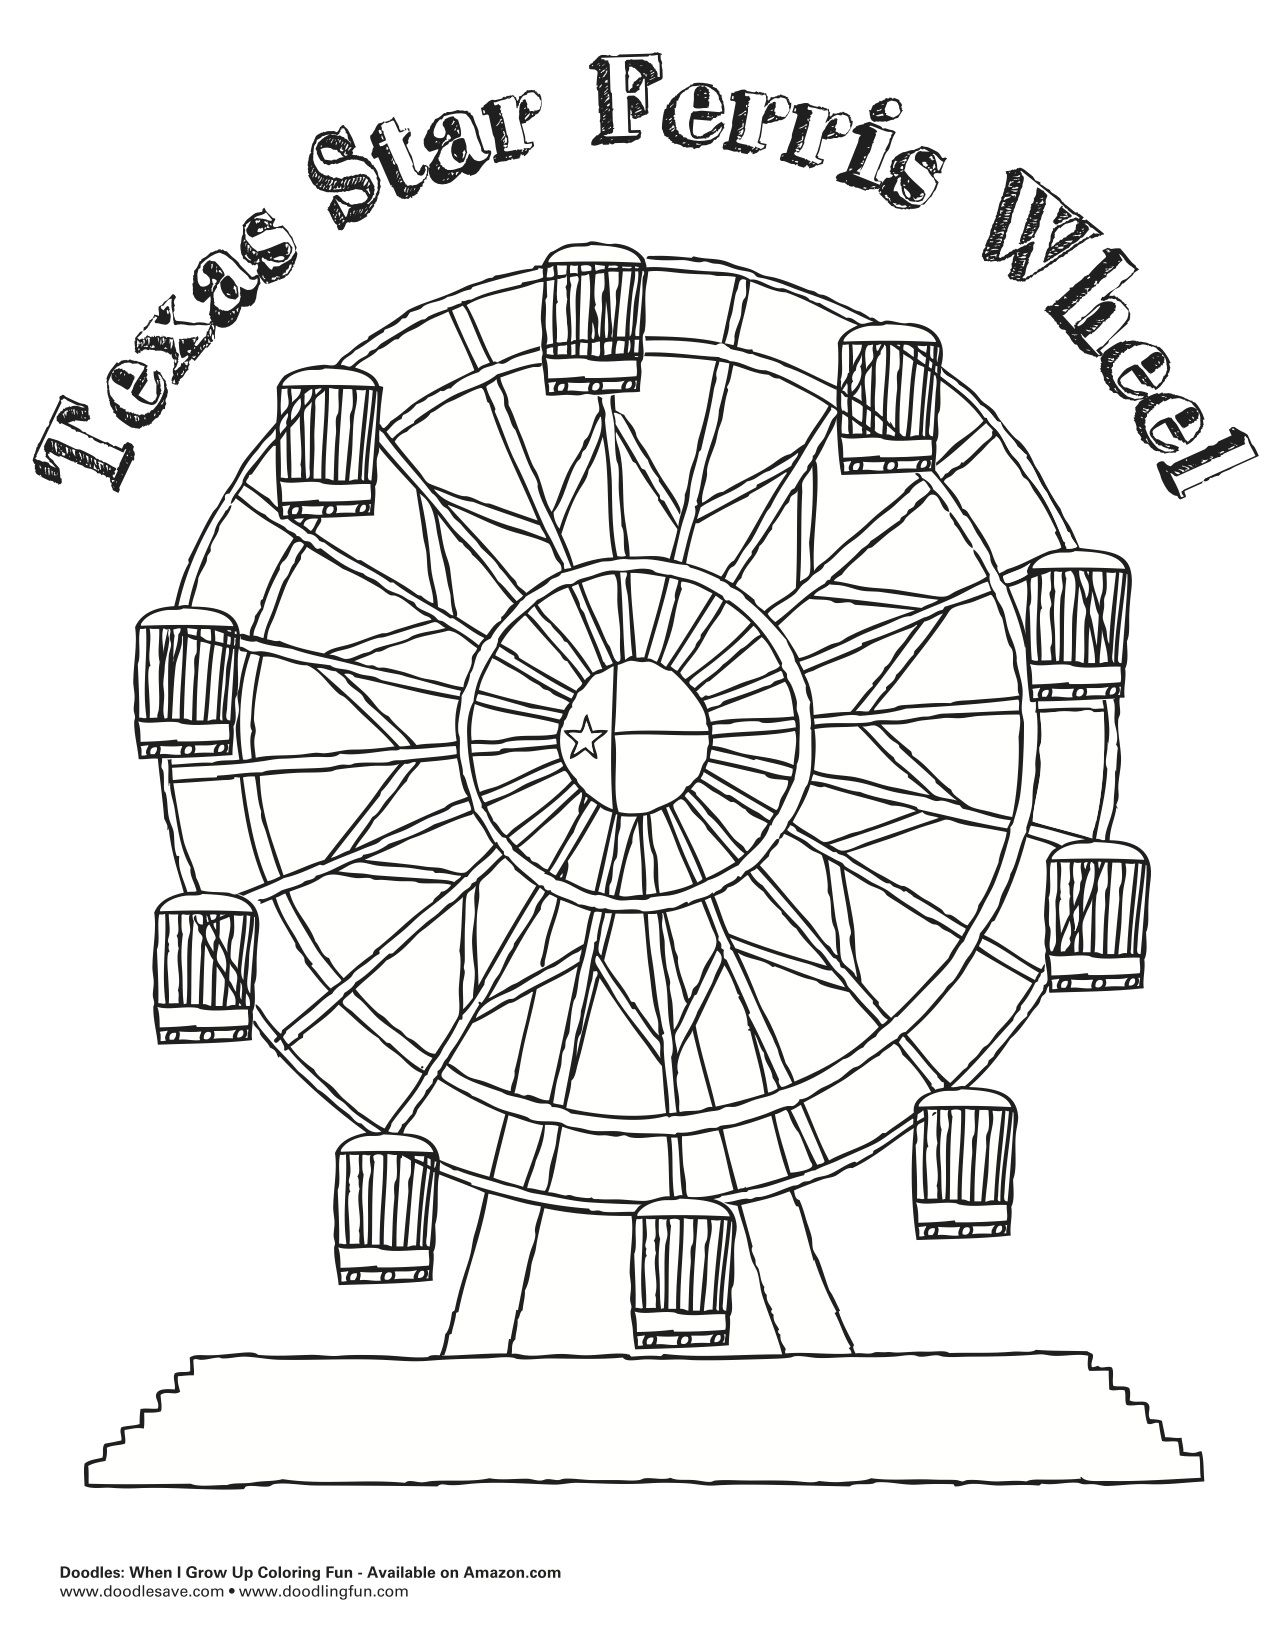 The Texas Star Ferris Wheel The Largest In North America Flag Coloring Pages Coloring Pages Shopkin Coloring Pages